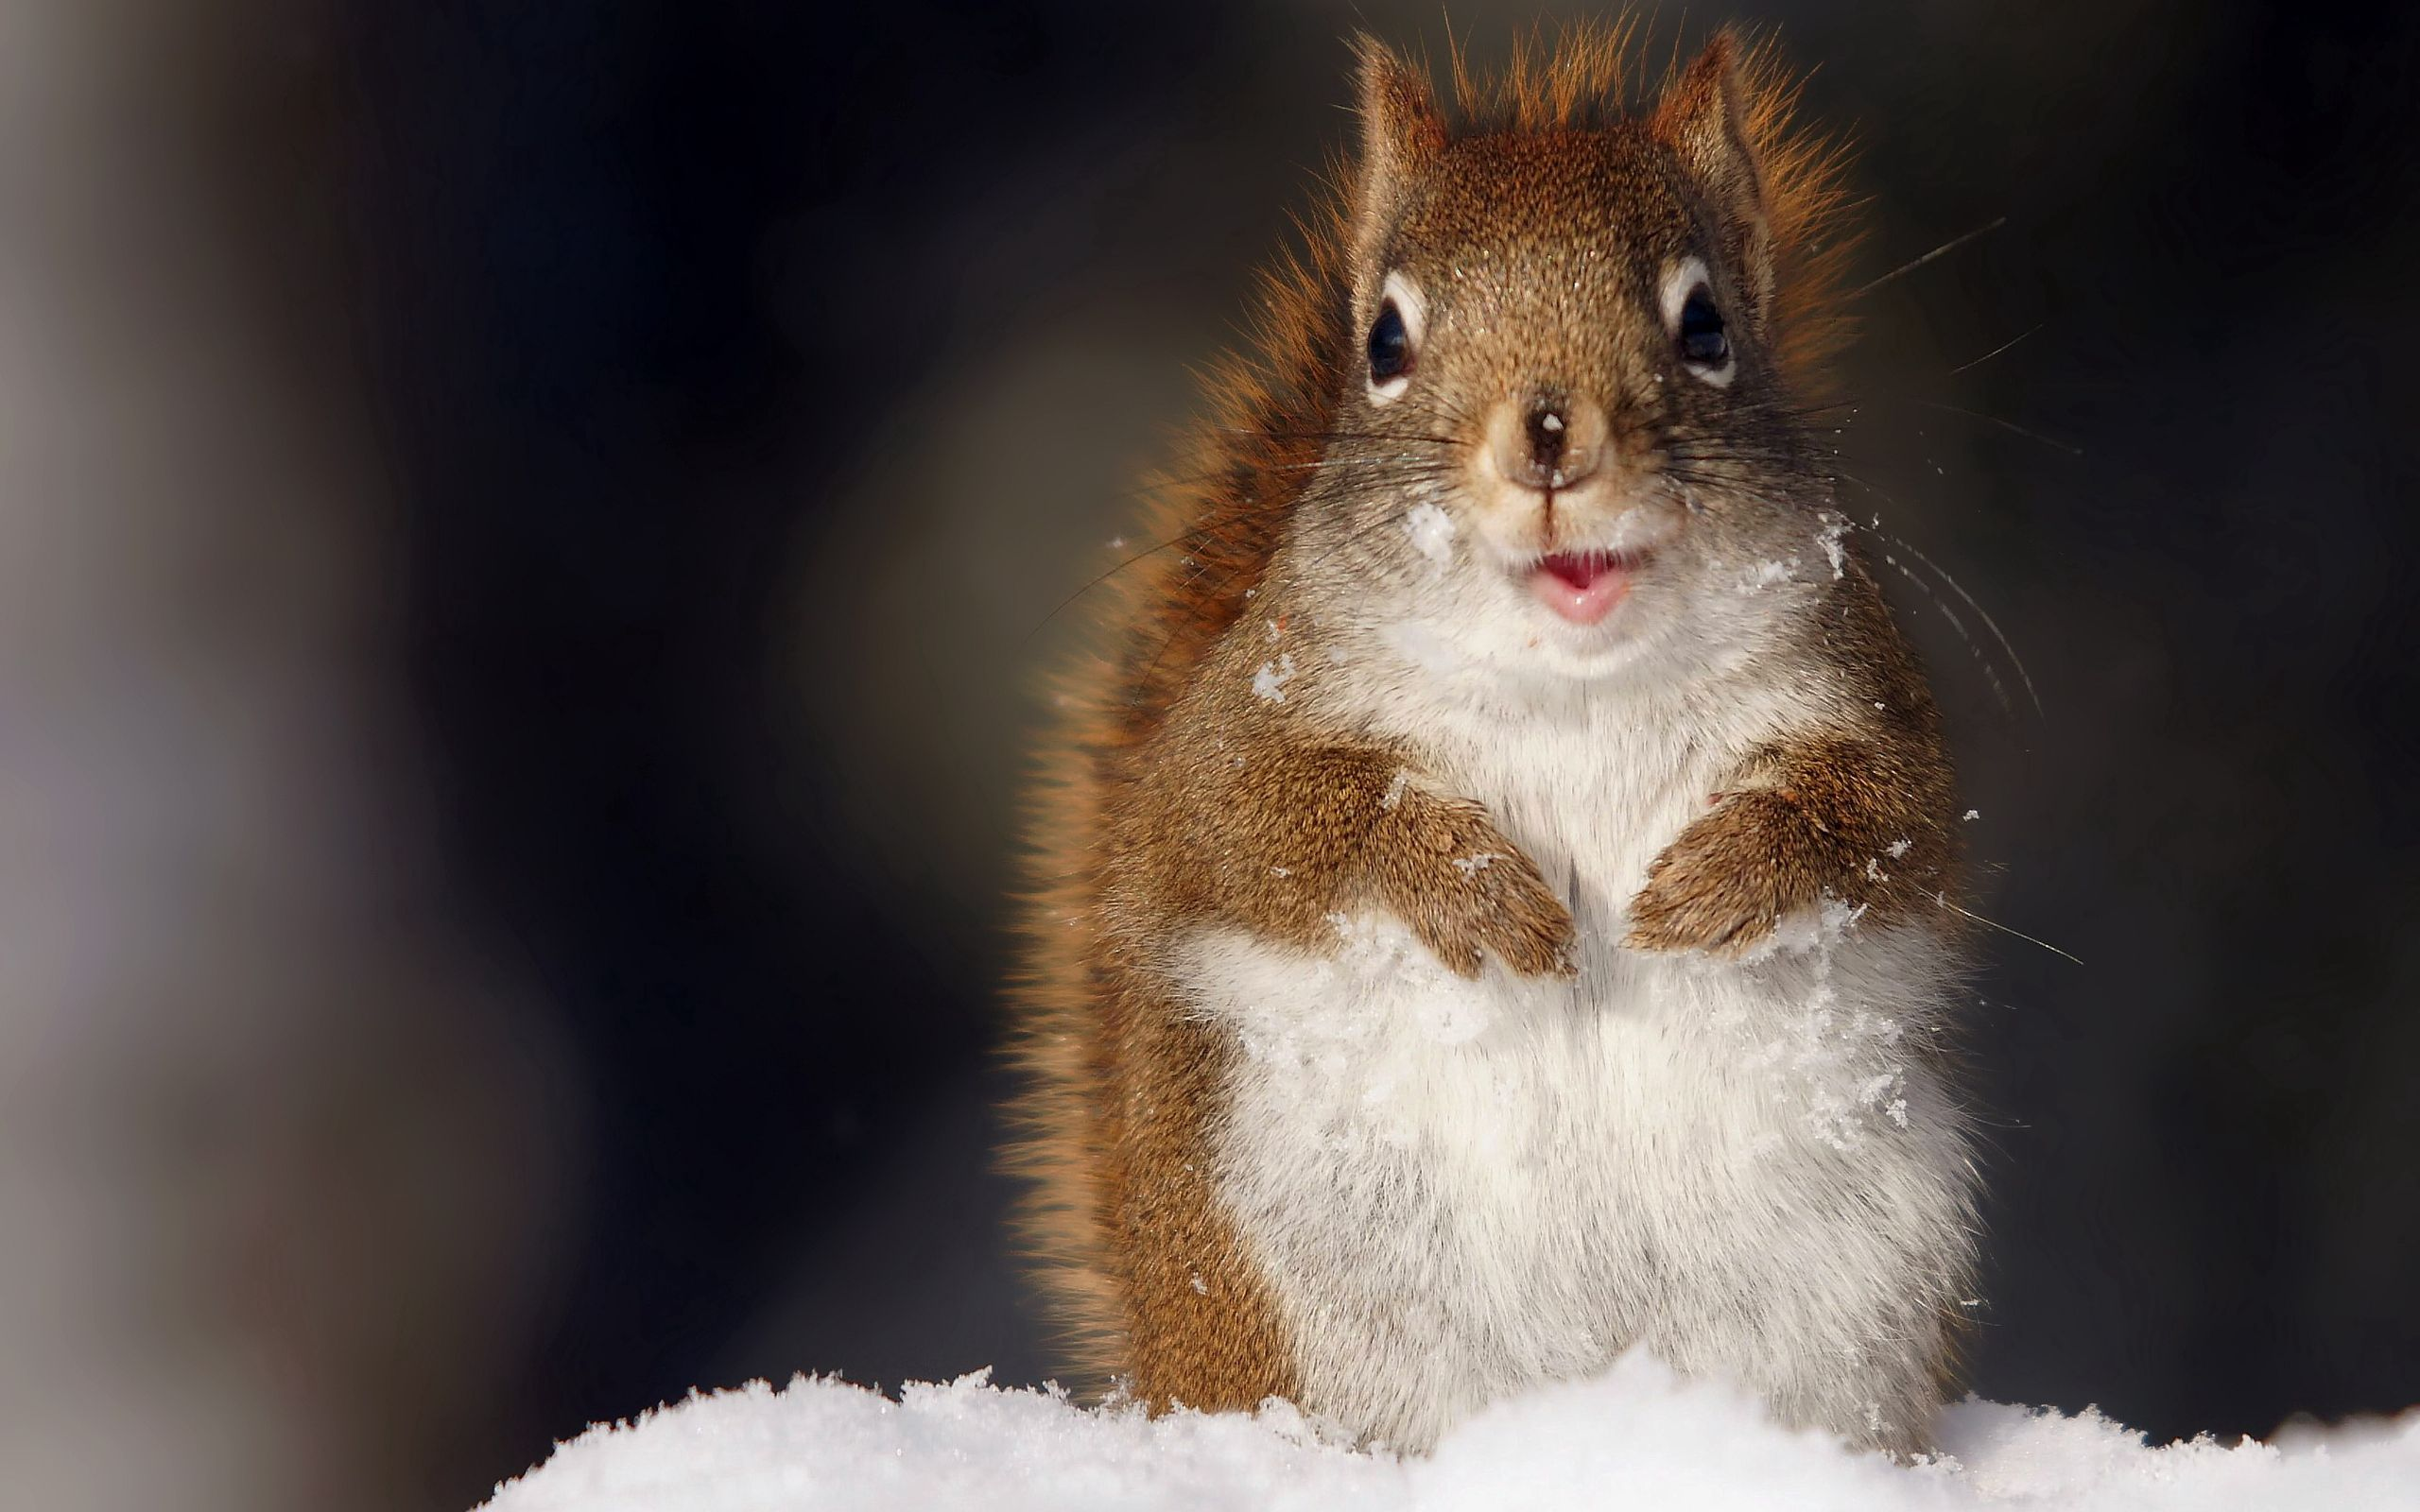 112979 Screensavers and Wallpapers Squirrel for phone. Download Animals, Squirrel, Snow, Fluffy, Muzzle pictures for free